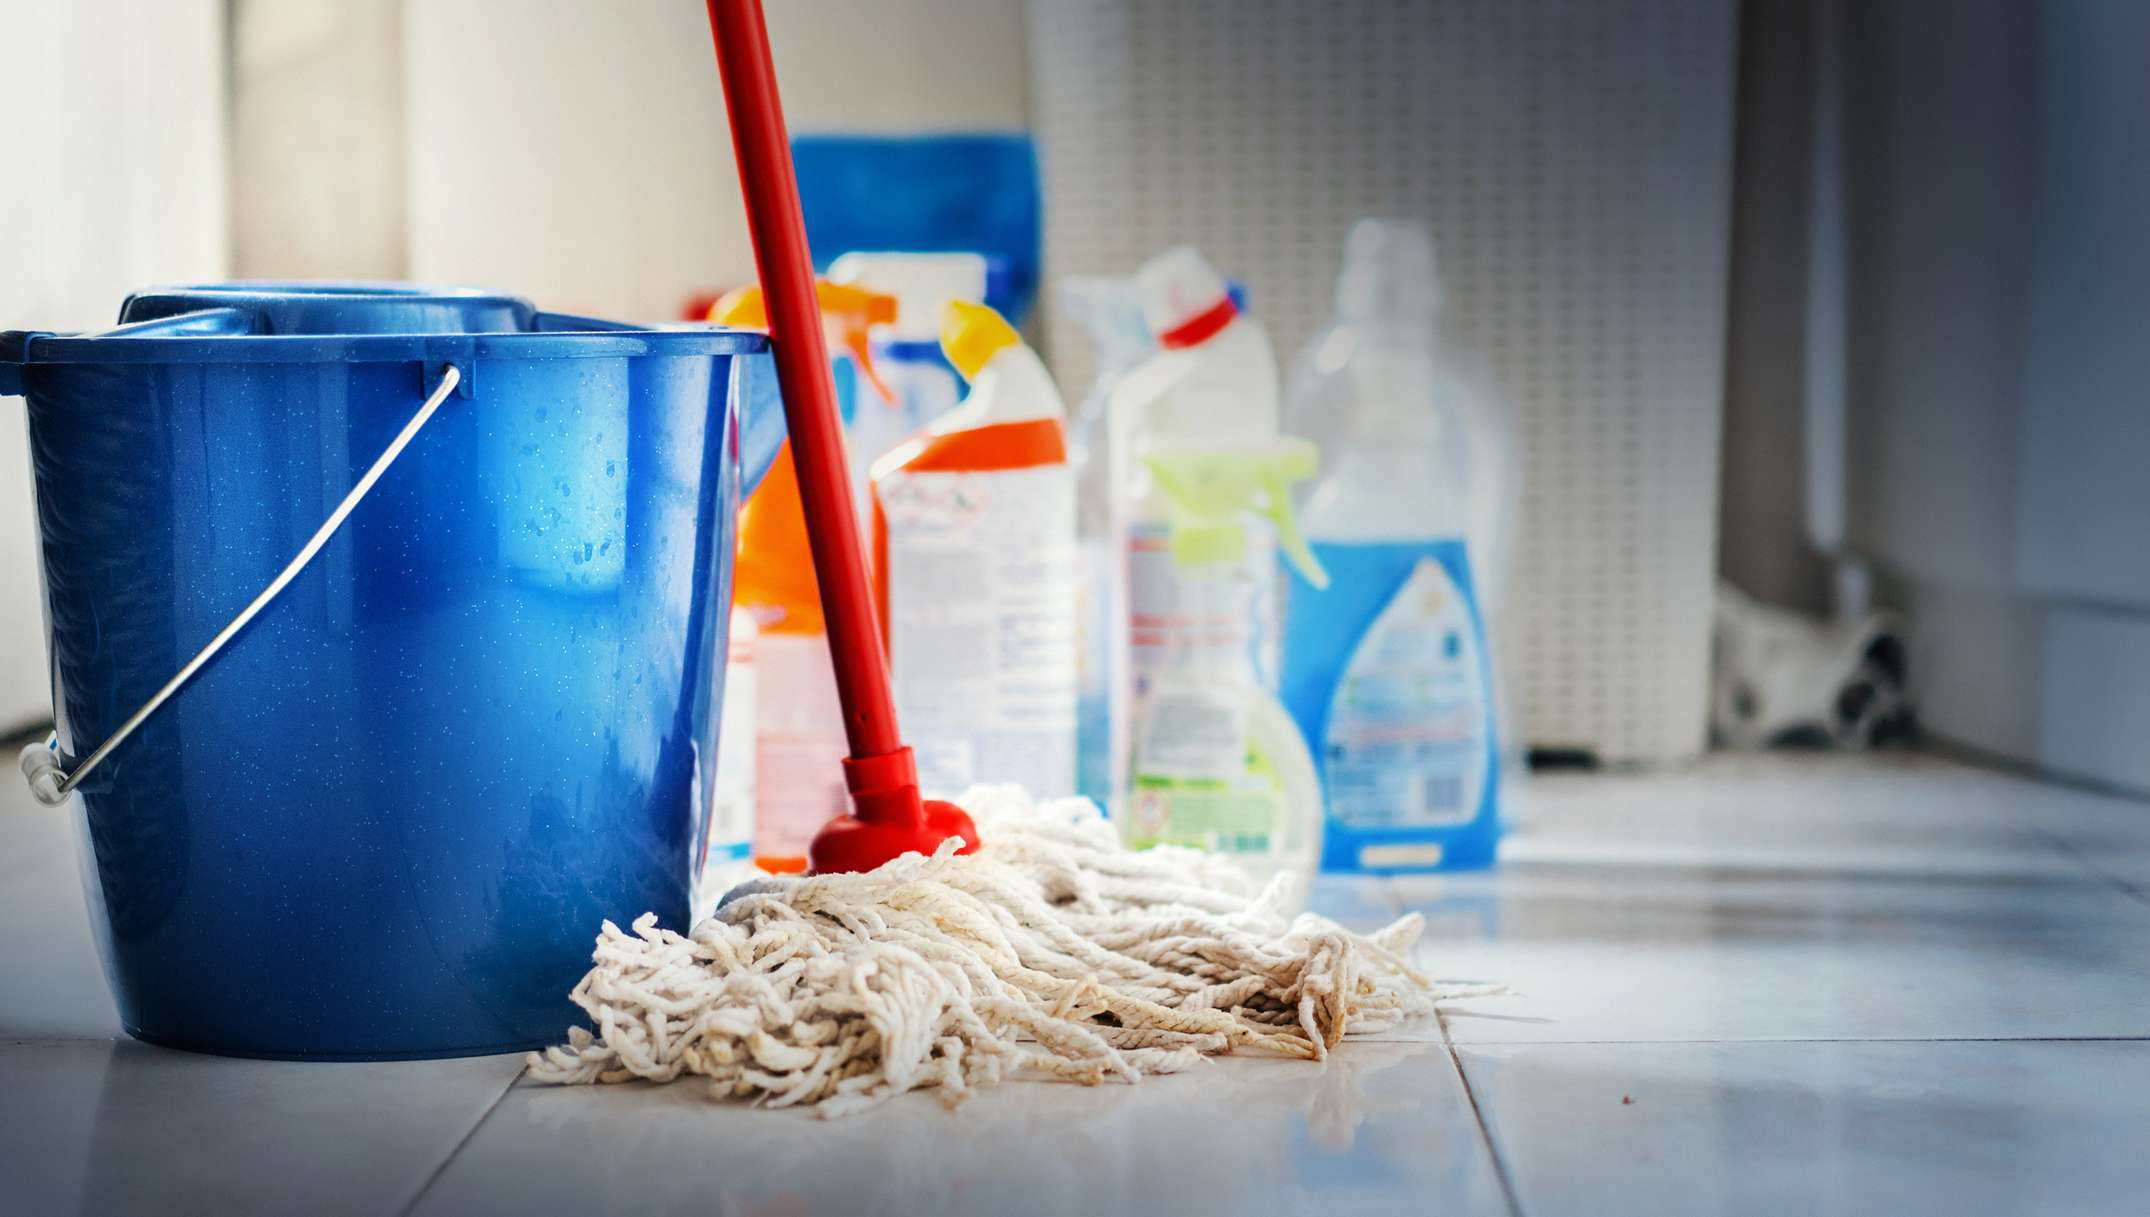 mop pale and cleaning supplies